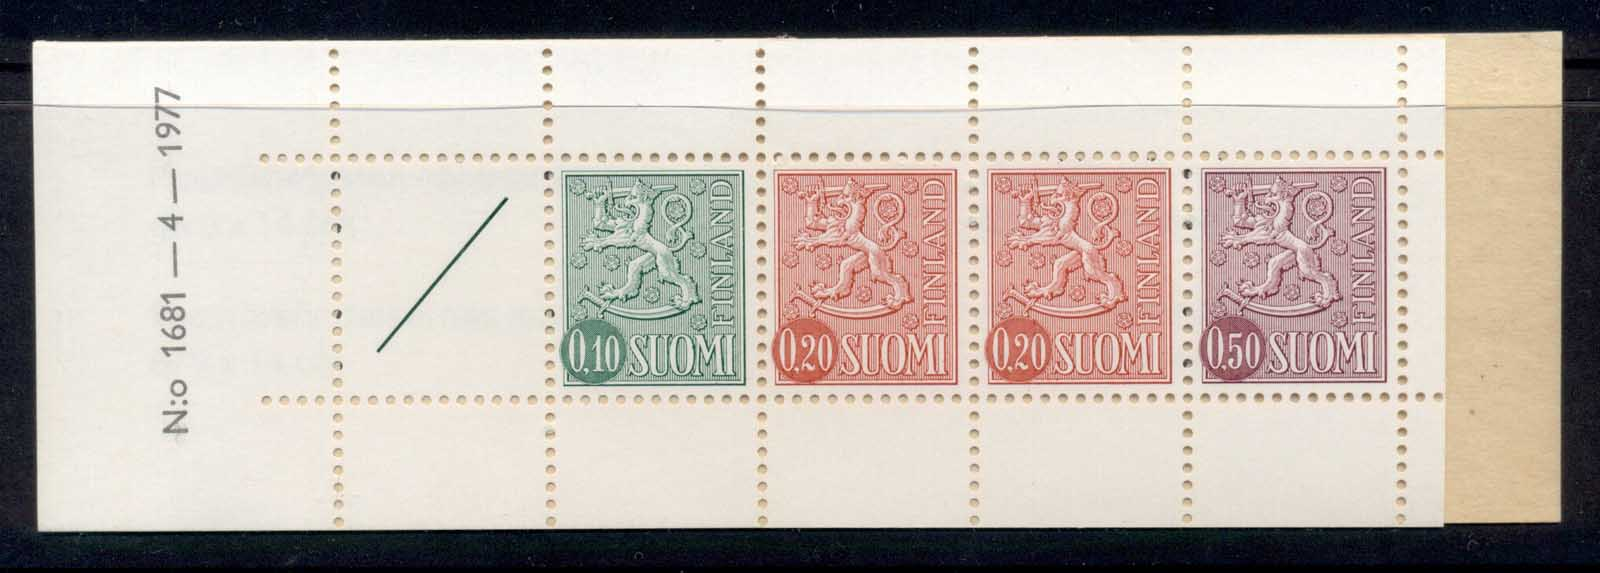 Finland 1968-78 Arms of Finland booklet 10, 2x20, 50, 1 label green cover '77 MUH